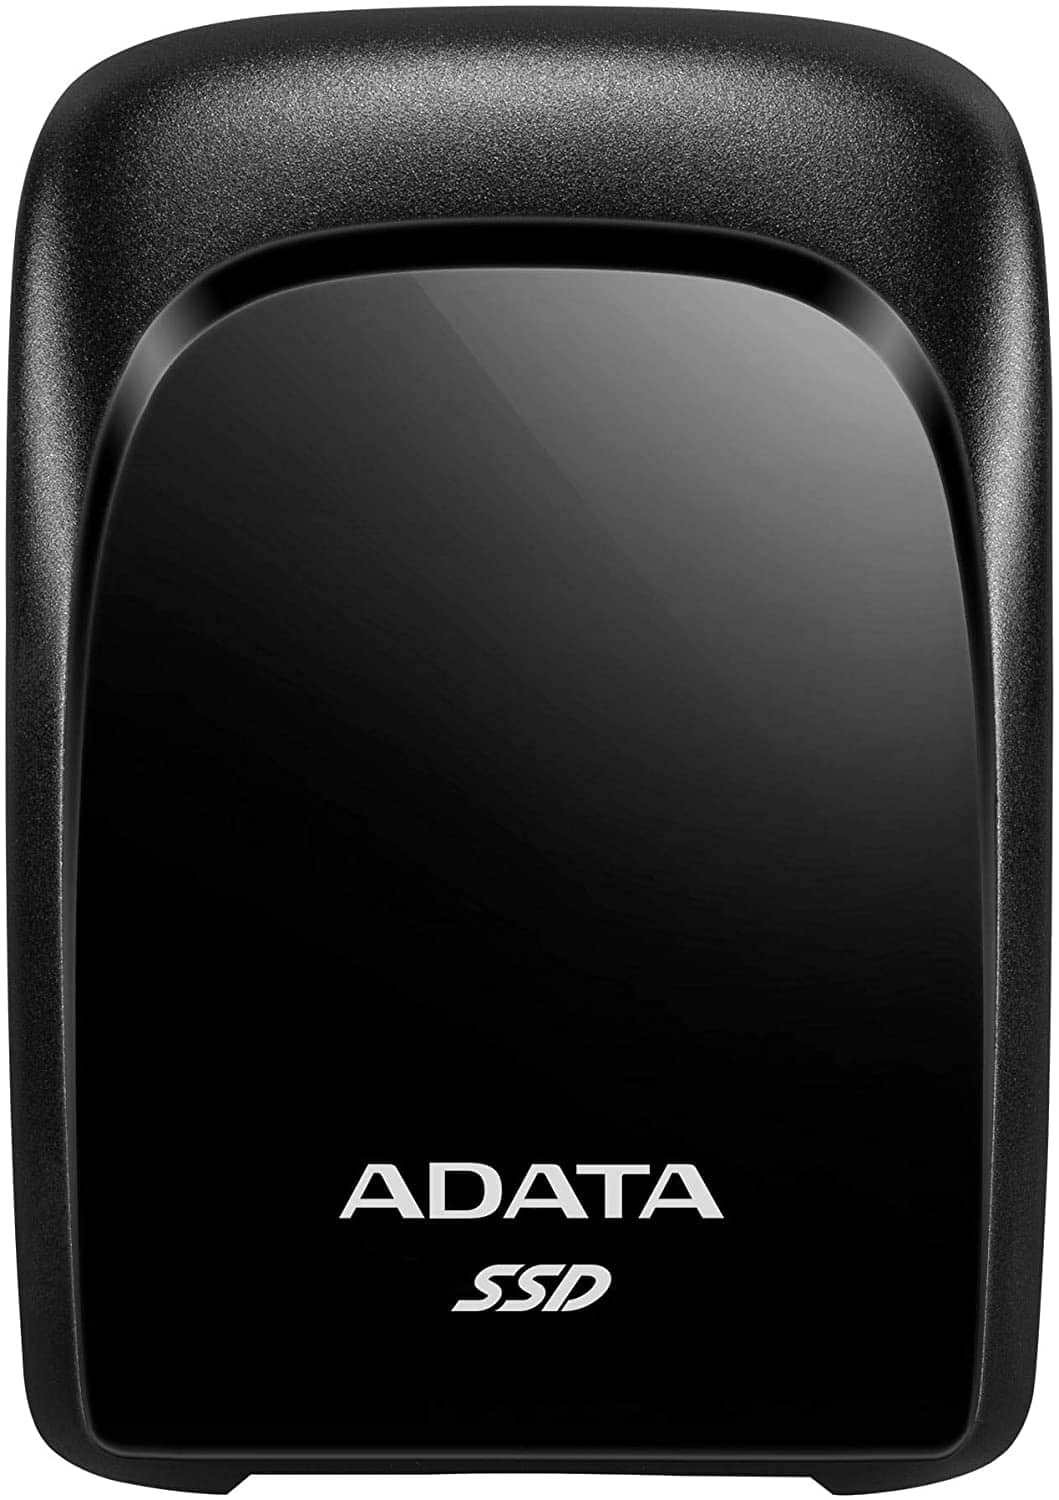 1TB ADATA Entry SC680 Series USB 3.1 External SSD